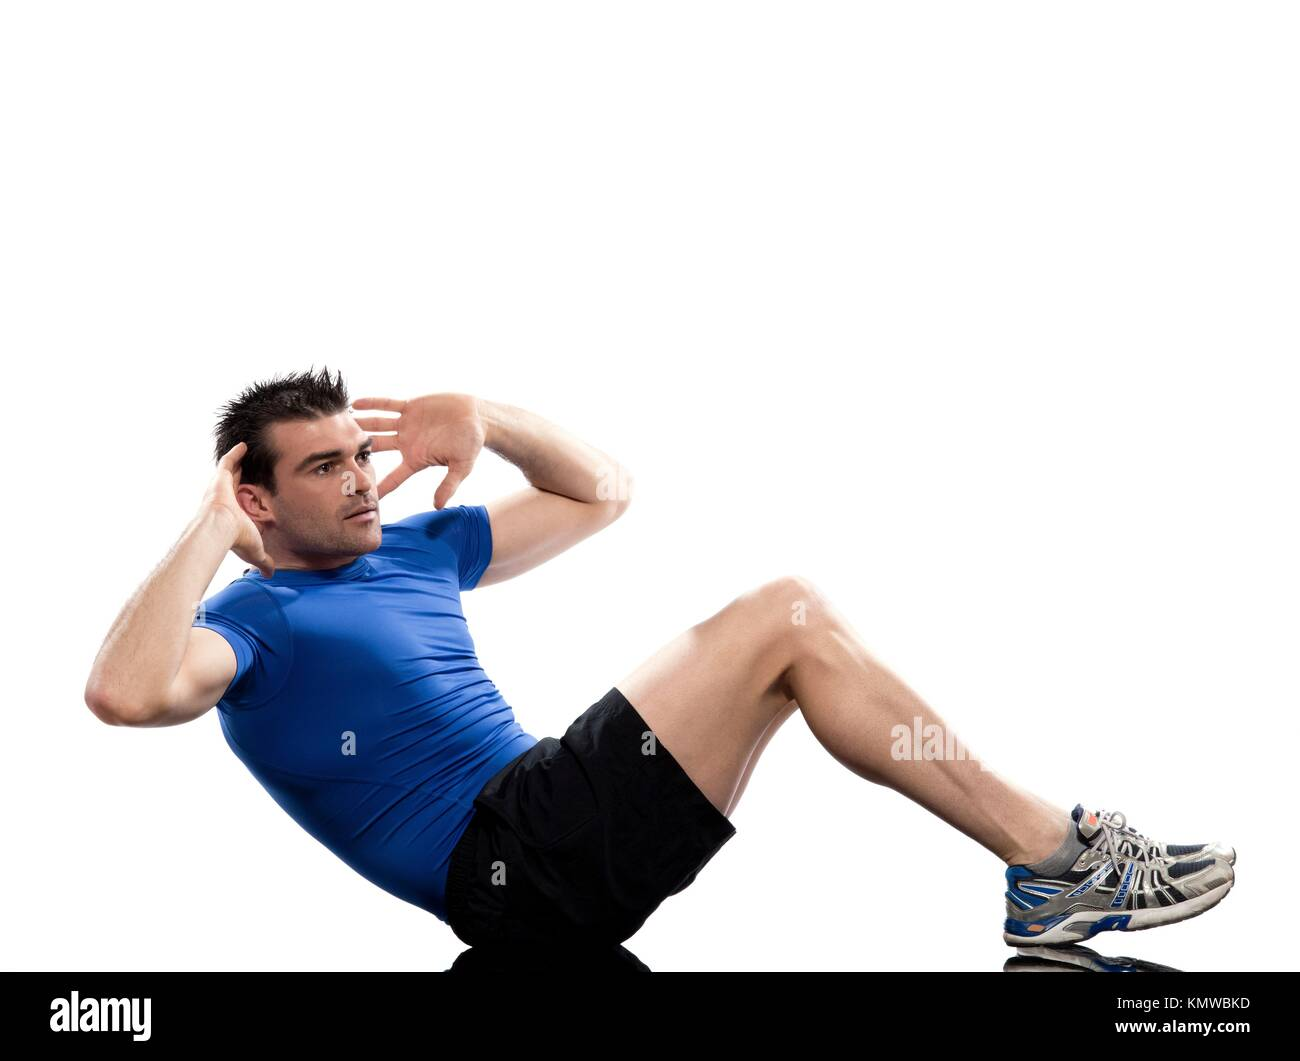 man on Abdominals rotation workout posture on white background  This exercise engages the oblique abdominal muscles - Stock Image